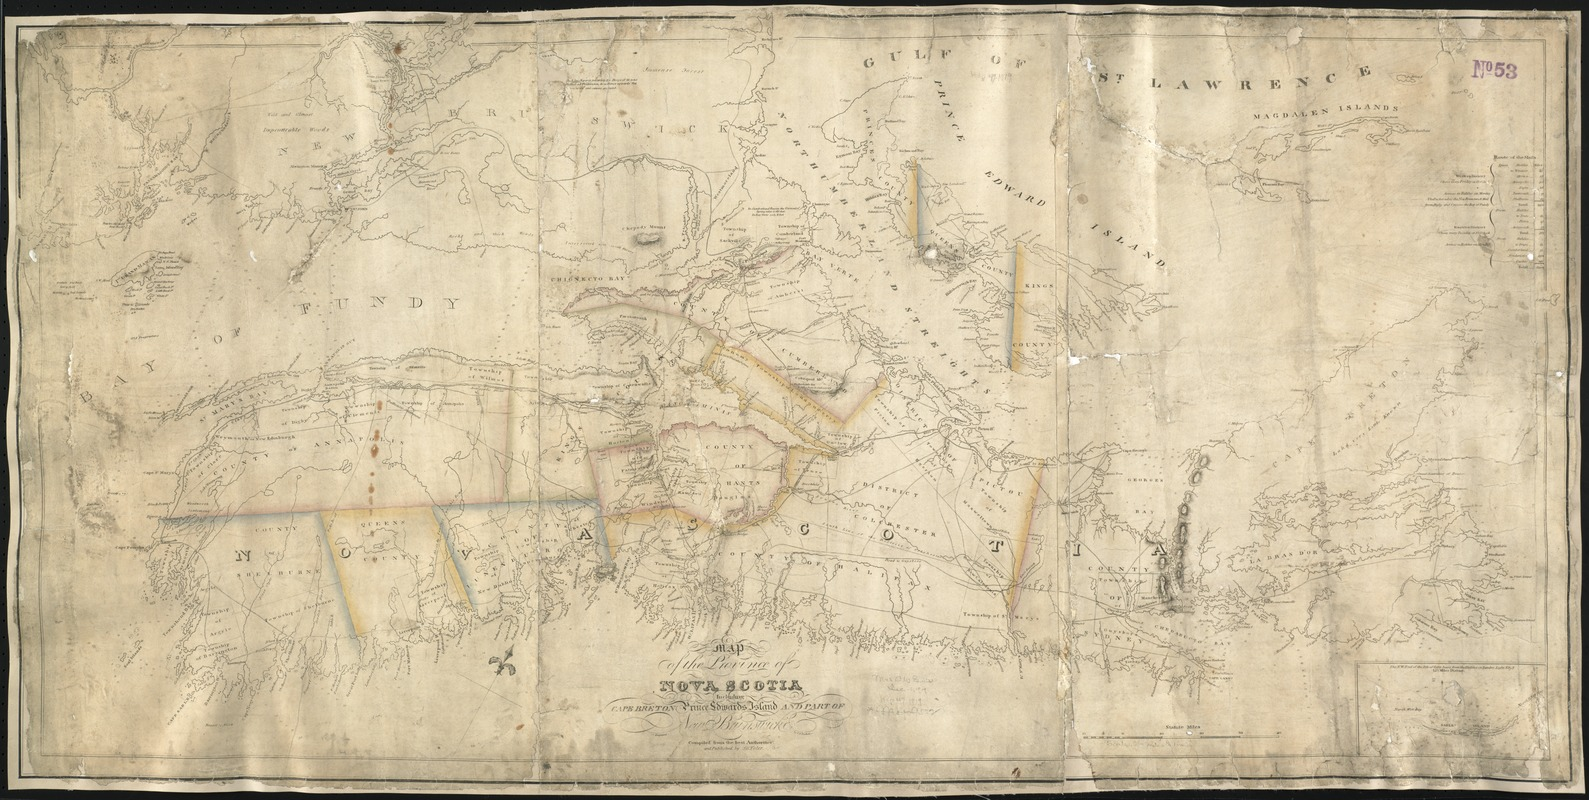 Map of the province of Nova Scotia including Cape Breton Prince Edwards Island and part of New Brunswick